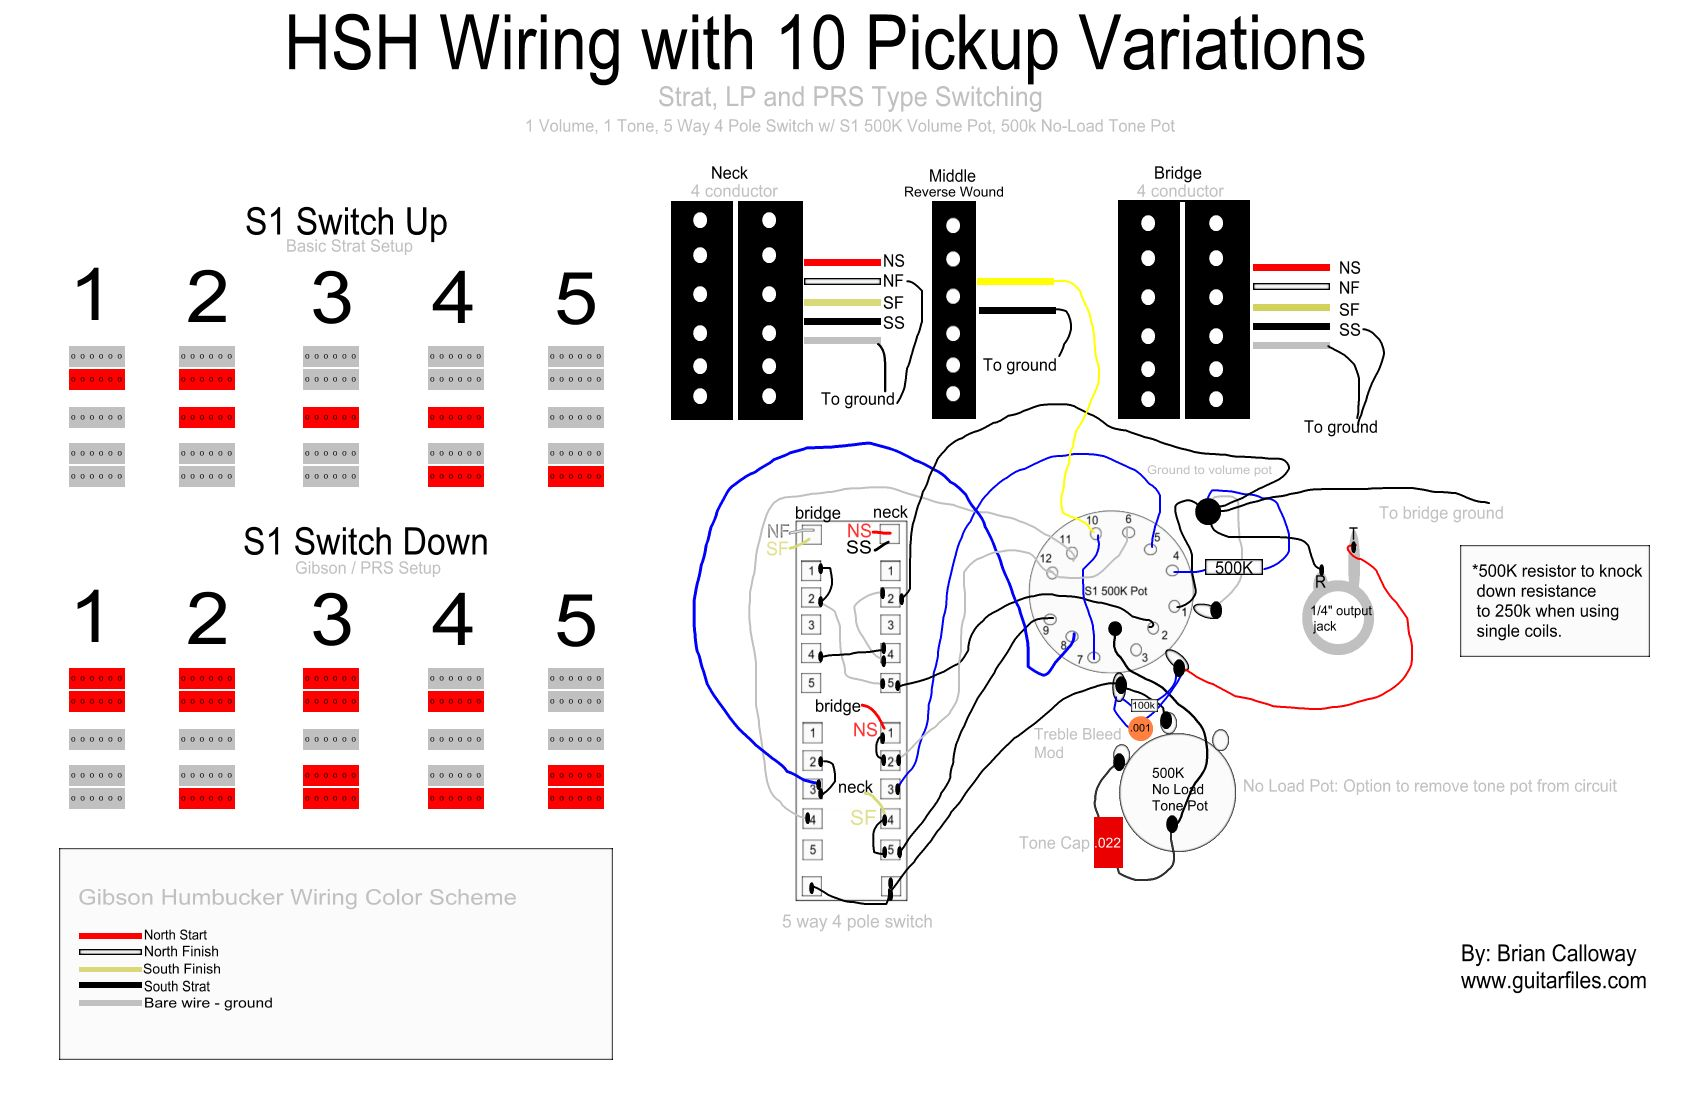 HSH Guitar    Wiring     10    Pickup    Combinations 4 Pole Switch and S1 switching system    Diagram    by